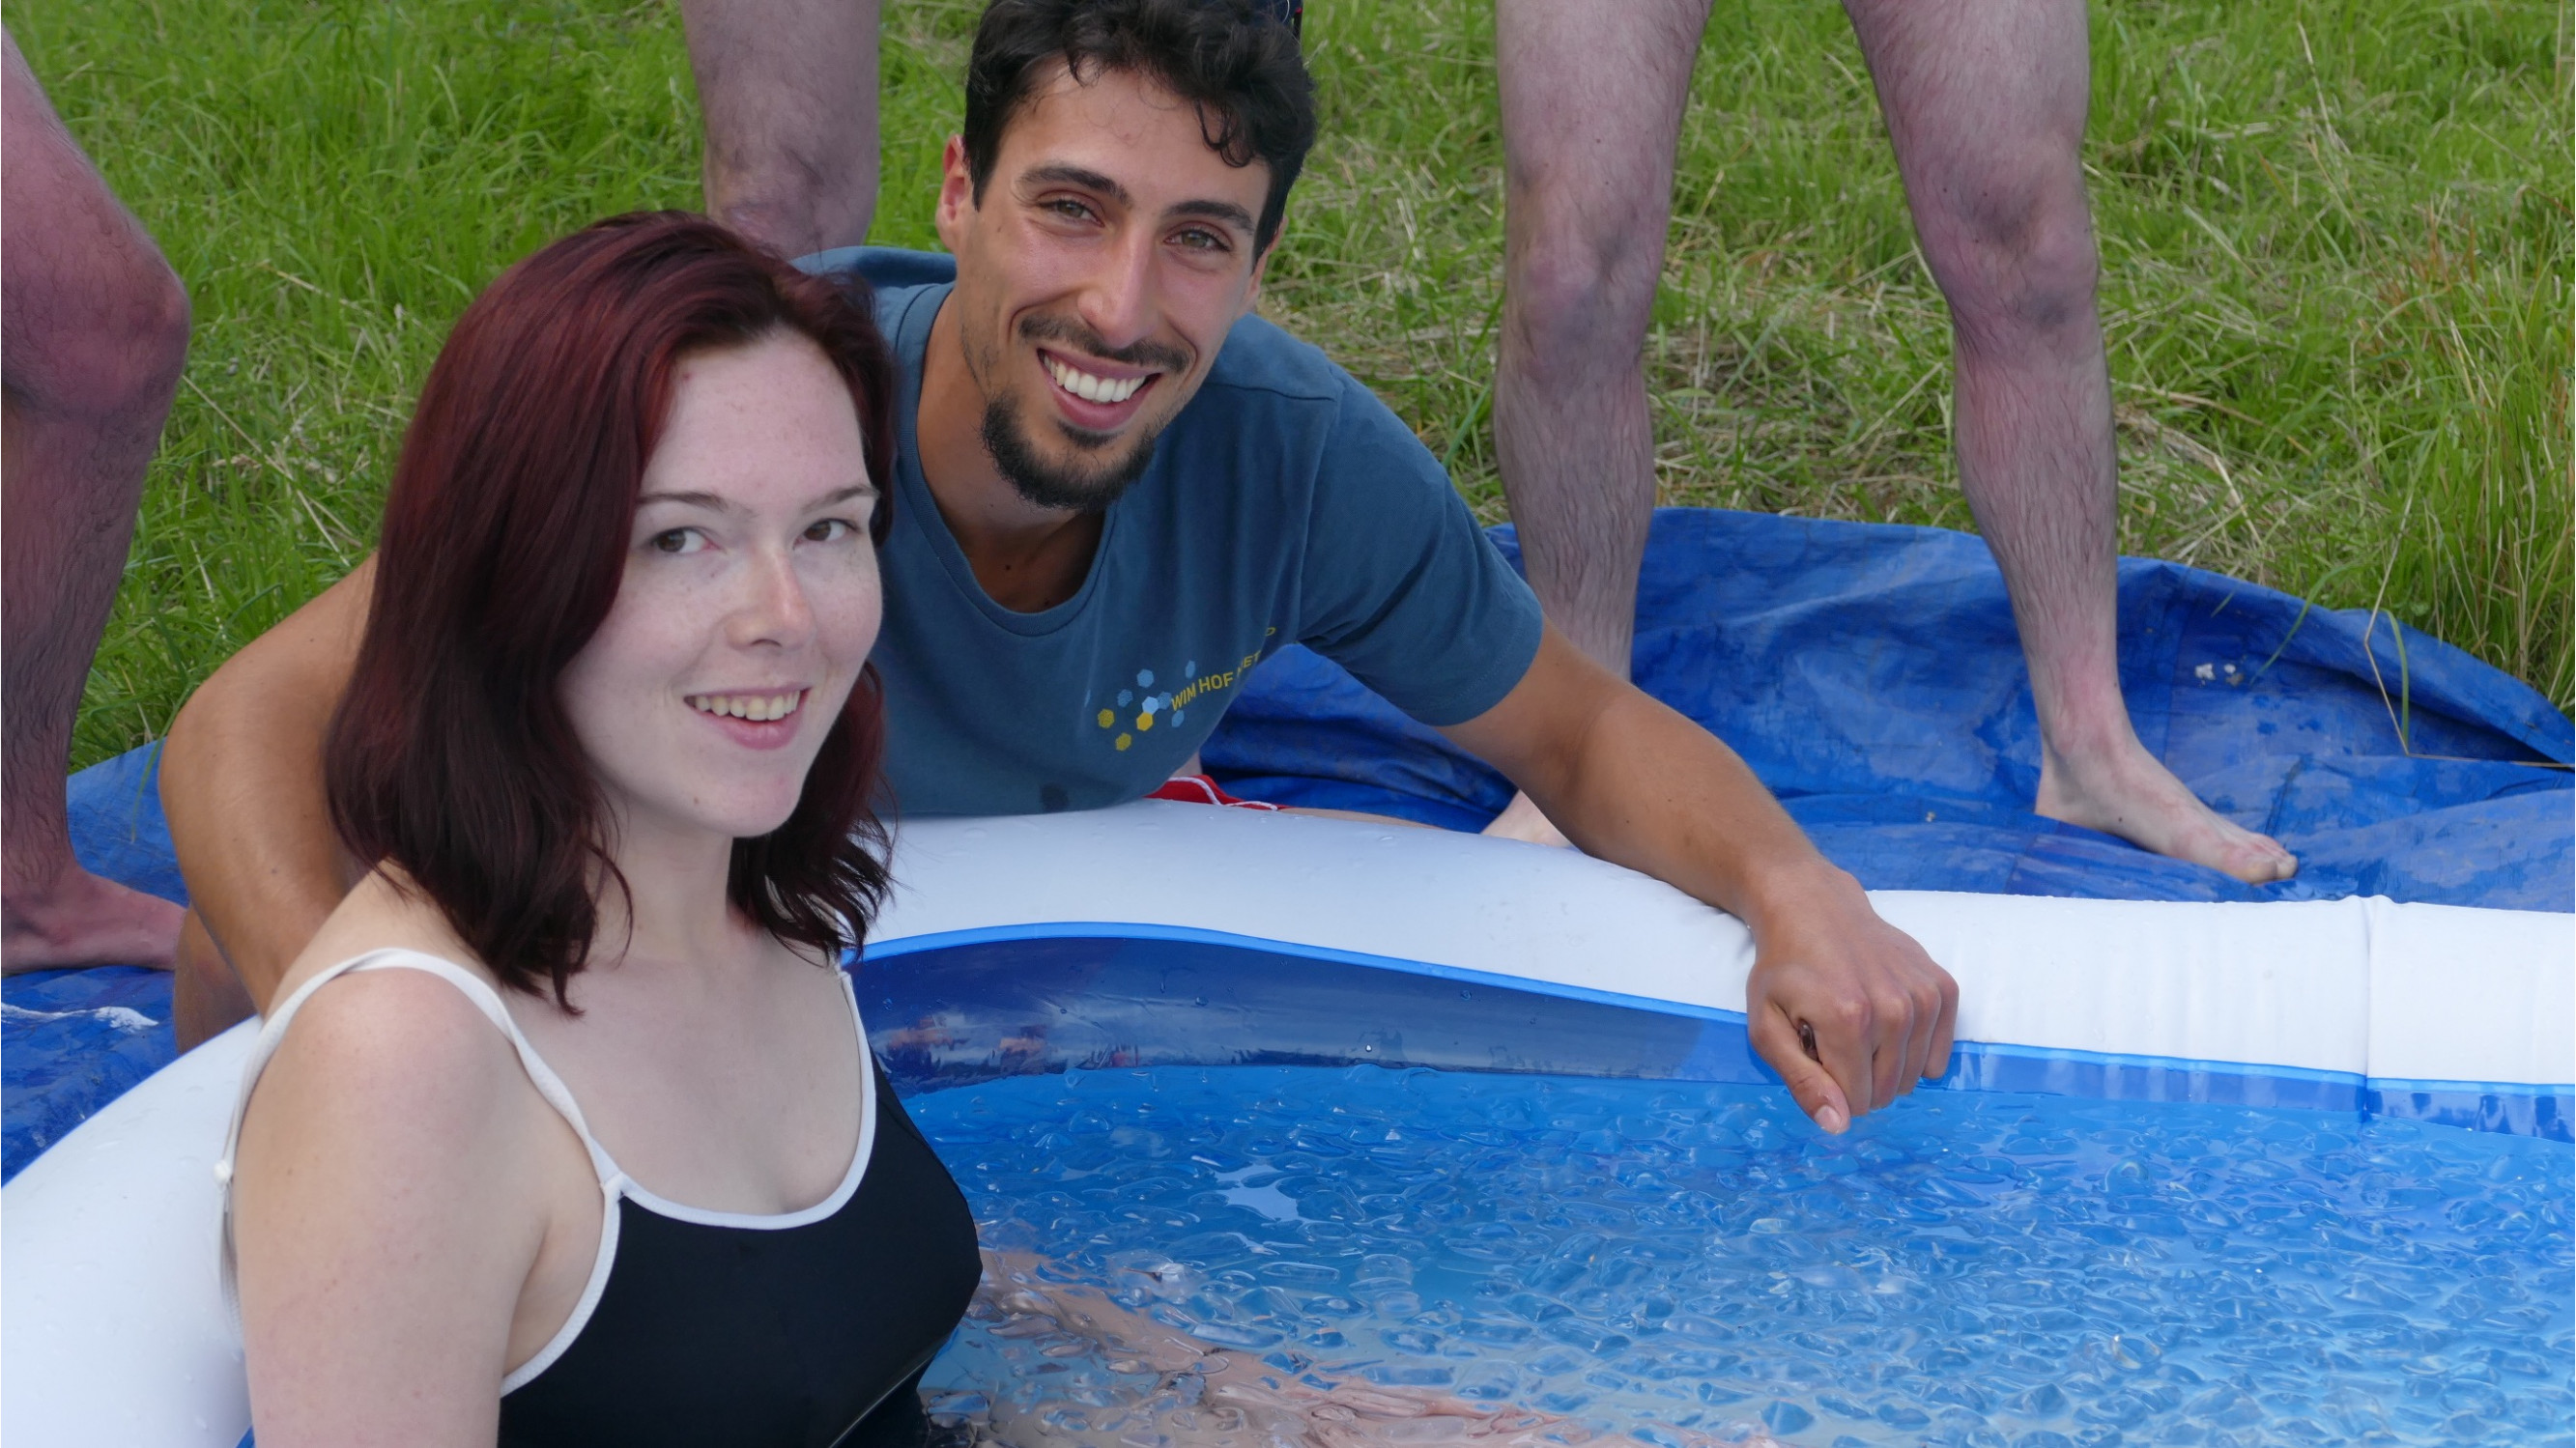 Image 8 of 9 - Experience Ice Bath to get an impression of WHM Fundamentals Workshop at Boissy-lès-Perche